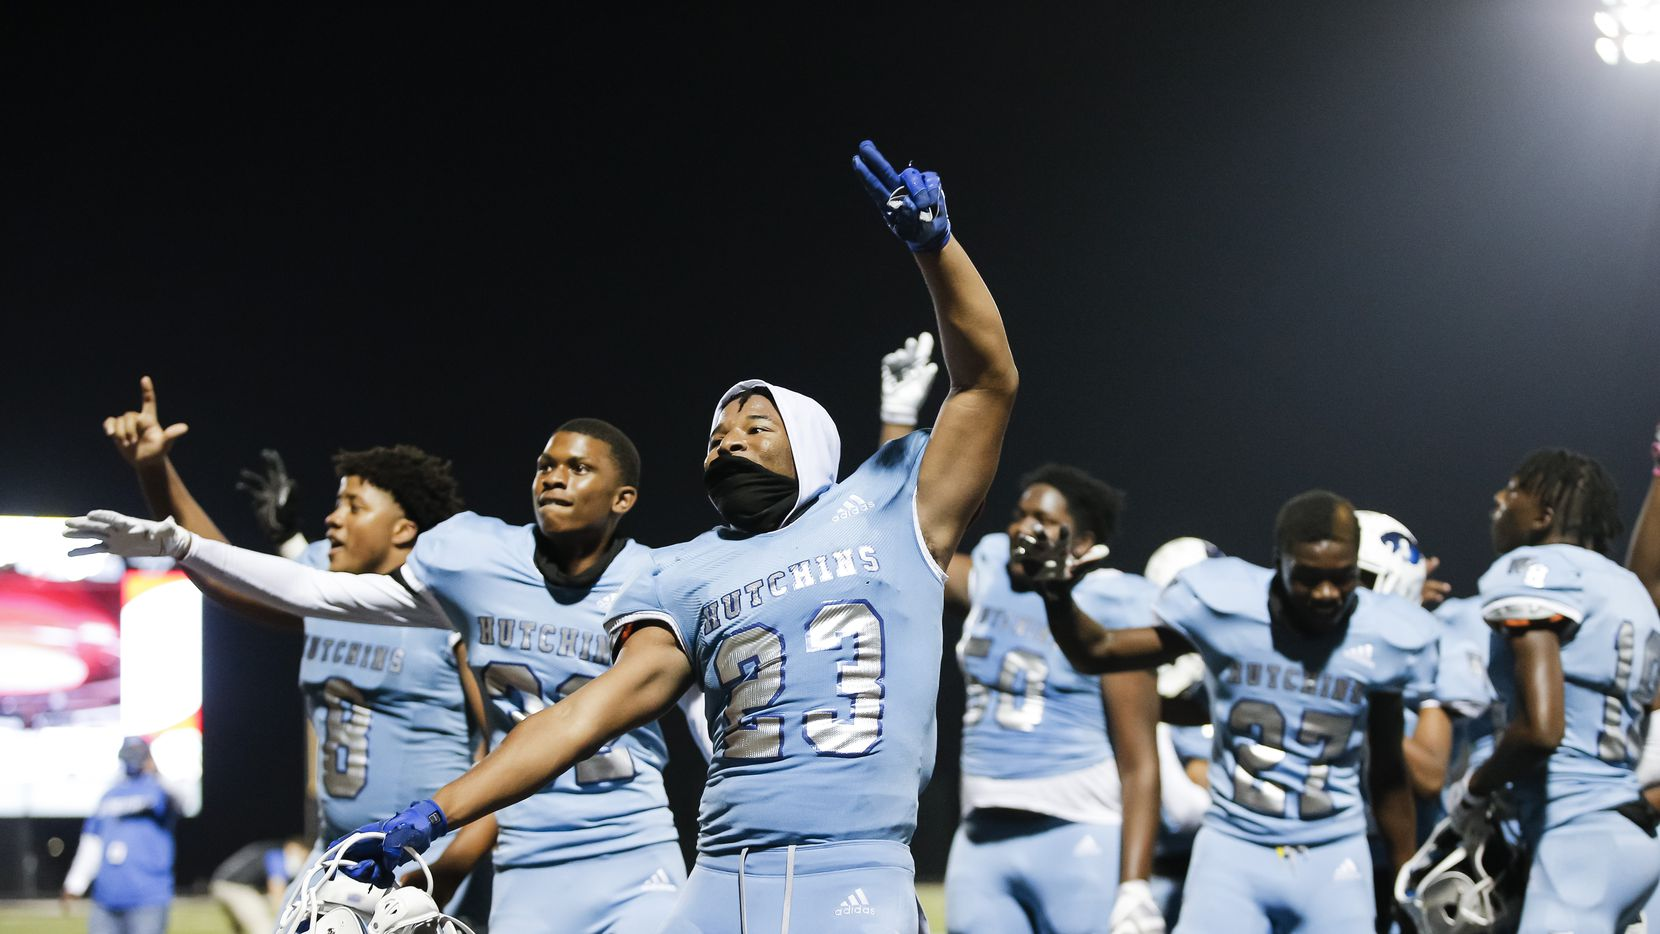 Wilmer-Hutchins senior linebacker Kendall Washington (23) and his teammates celebrate a 31-28 win over Kaufman after a Class 4A Division I bi-district playoff game in Forney, Friday, November 13, 2020. (Brandon Wade/Special Contributor)